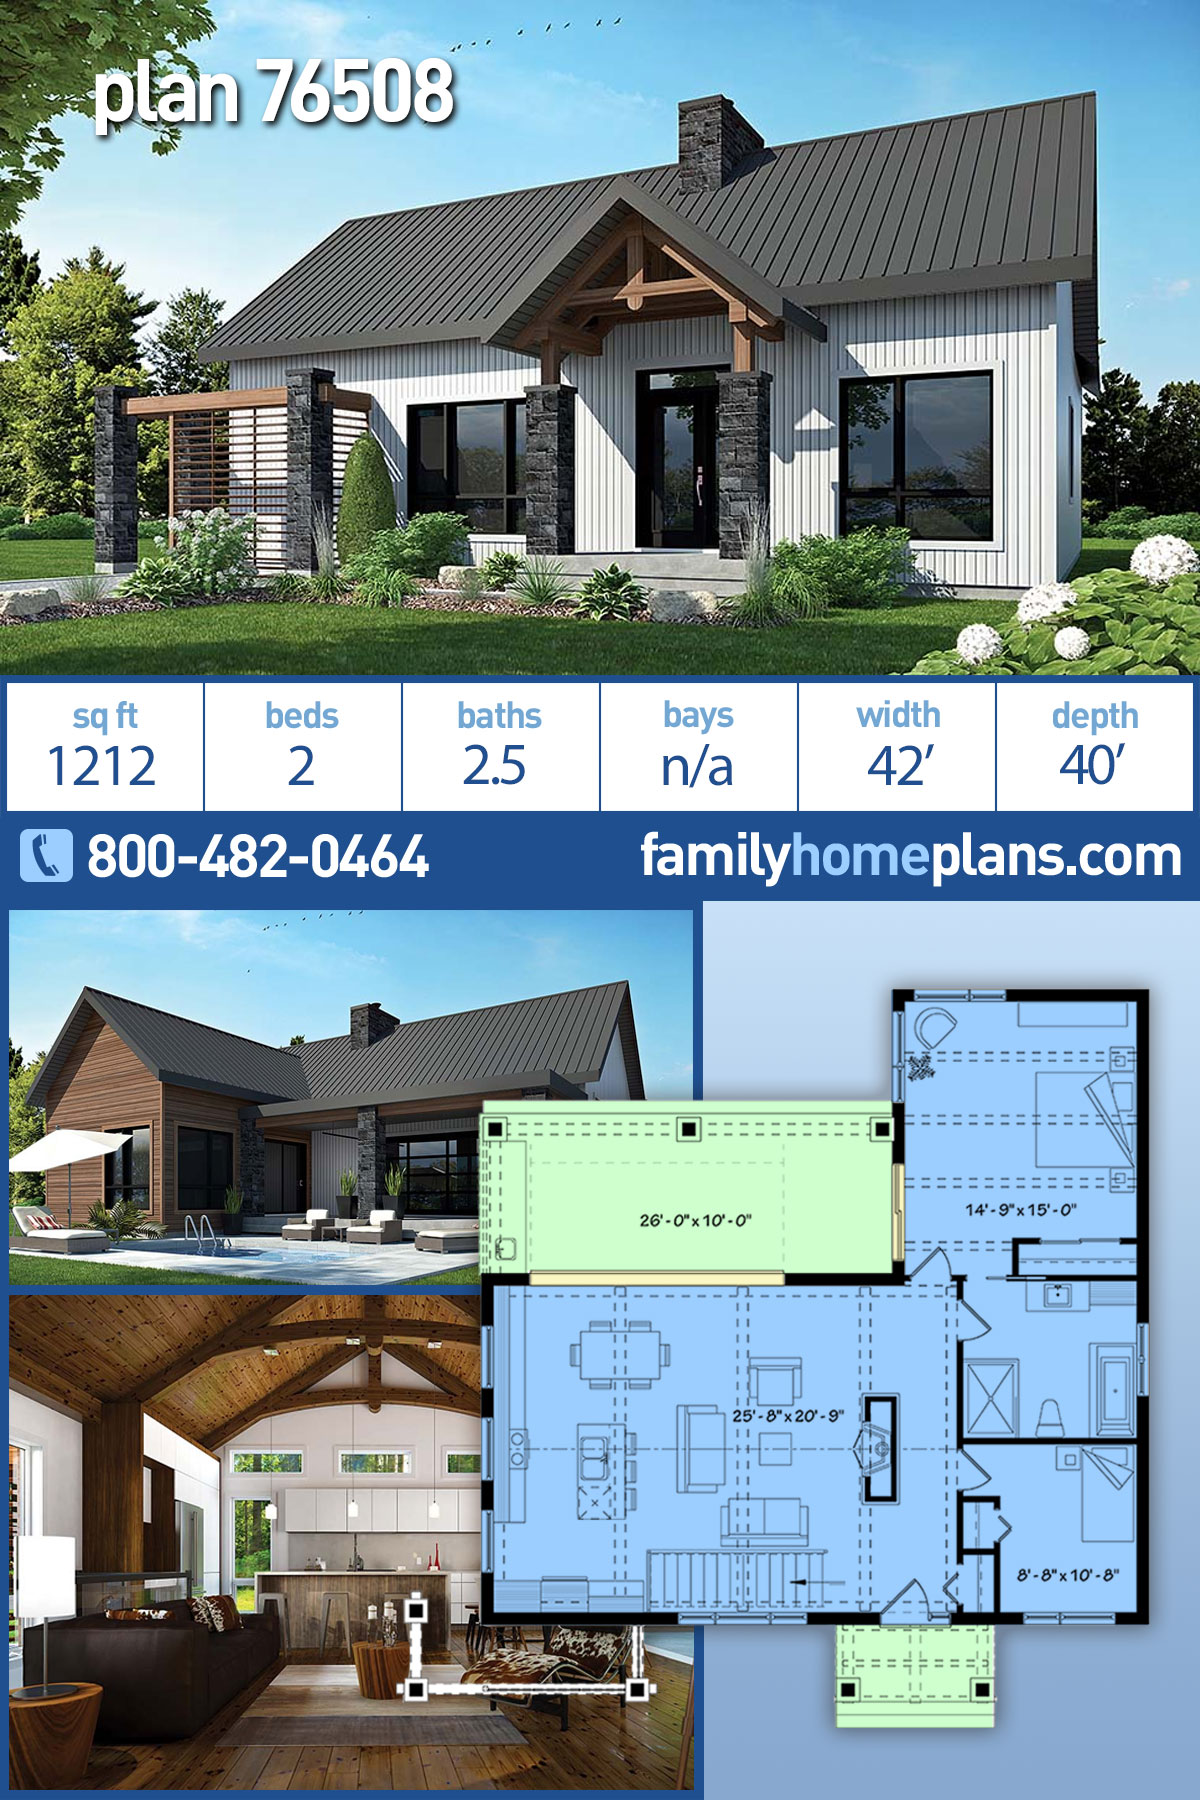 Cape Cod, Contemporary, Cottage, Country, Craftsman, Modern House Plan 76508 with 2 Beds, 1 Baths